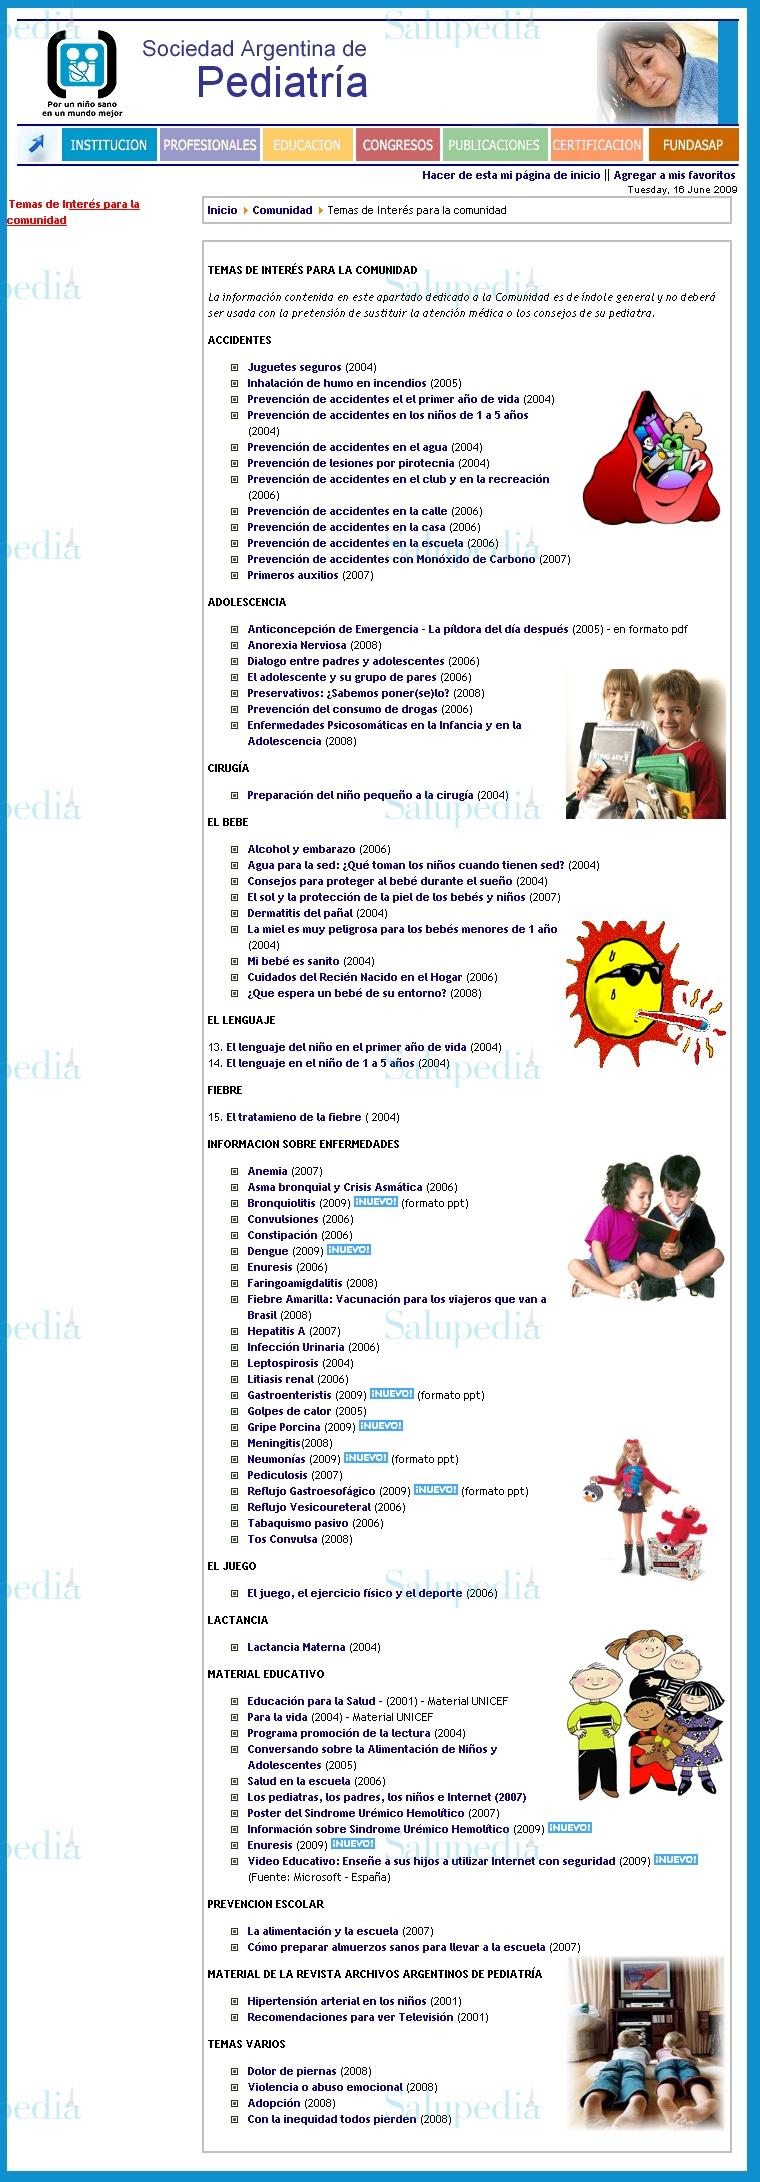 Cache grafica http://www.sap.org.ar/index.php?option=com_staticxt&staticfile=comunidad/info/index_temas.htm&Itemid=565